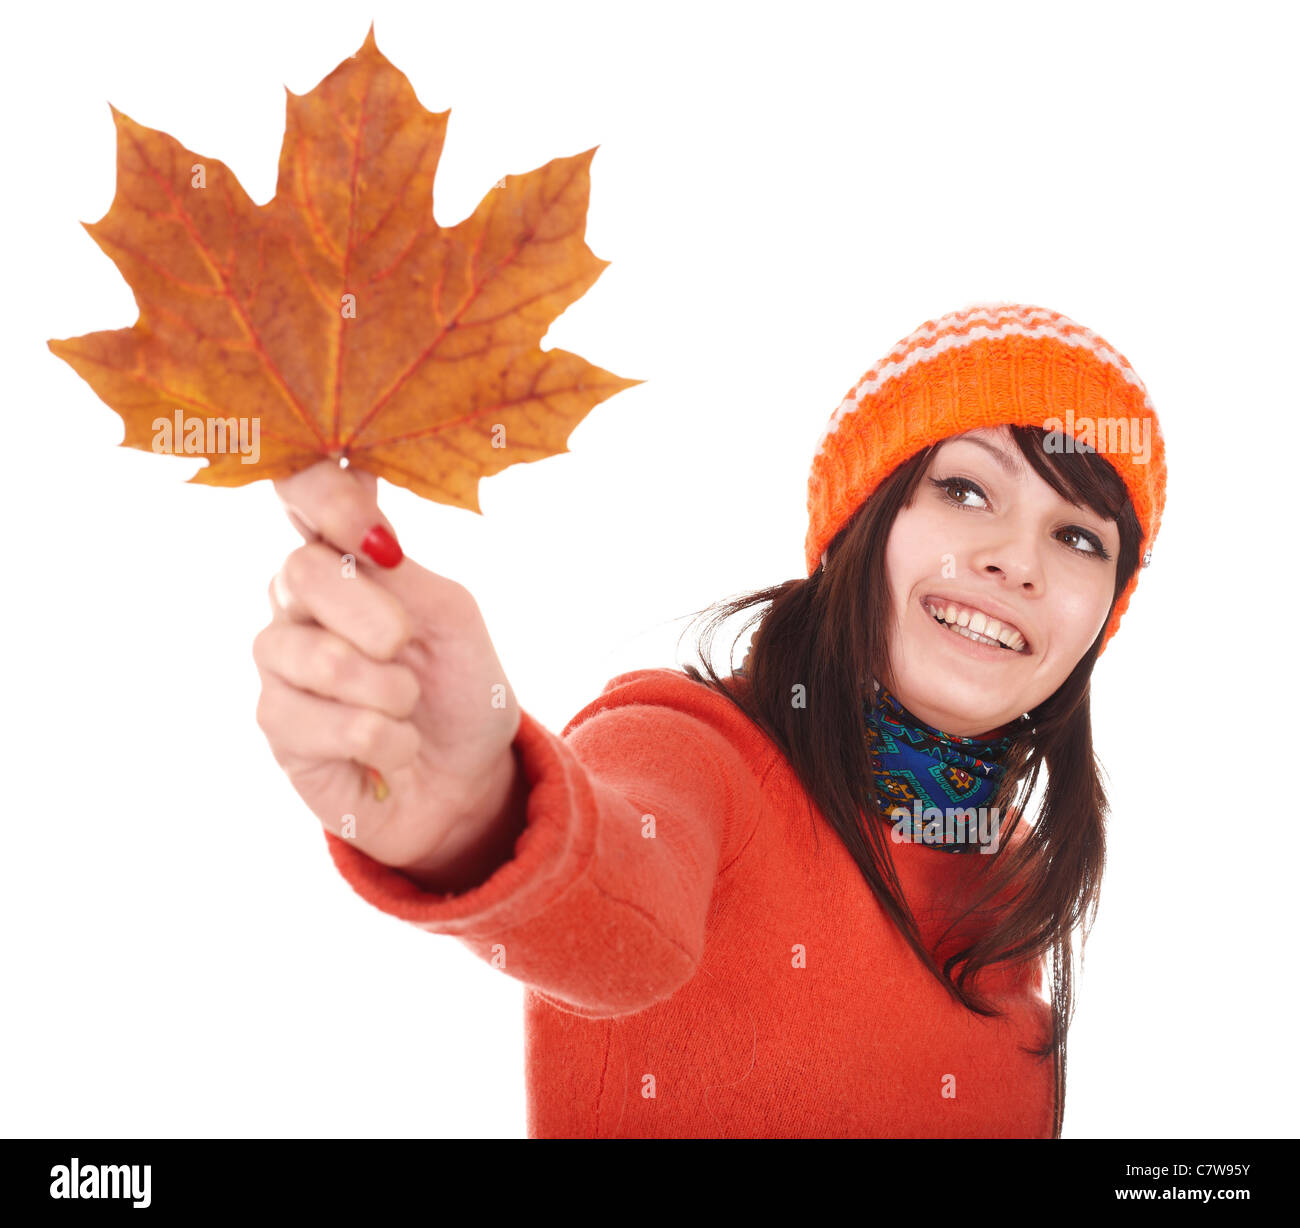 Young woman in autumn orange leaves. Outdoor. - Stock Image